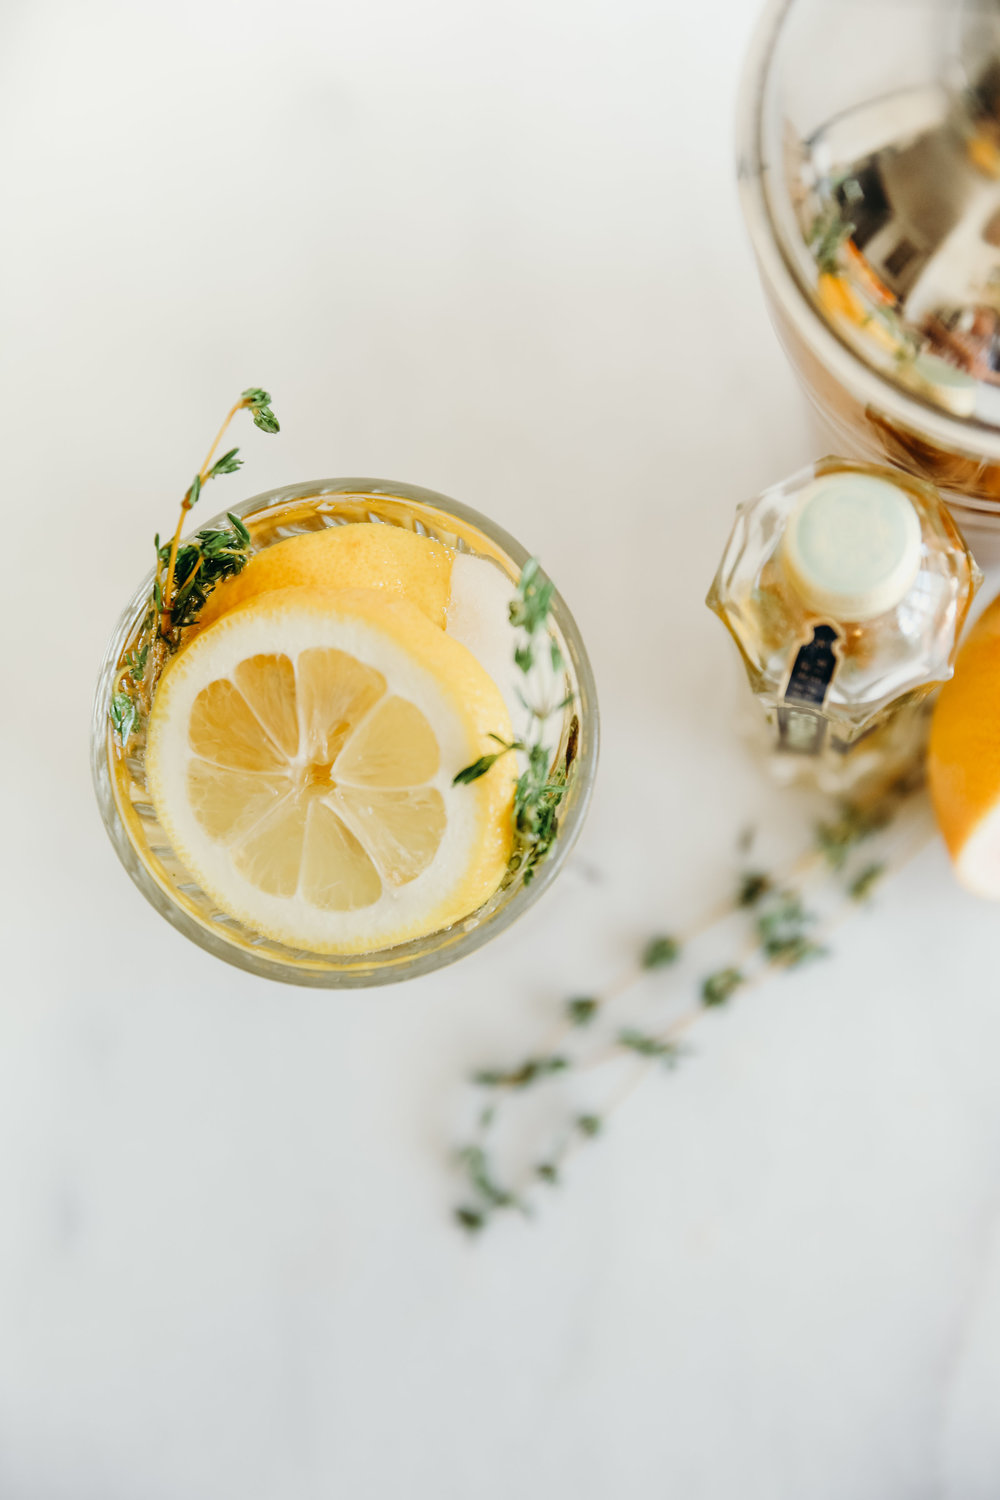 St Germain Cocktail with Lemon | Hillary Jeanne Photography | Food Photography